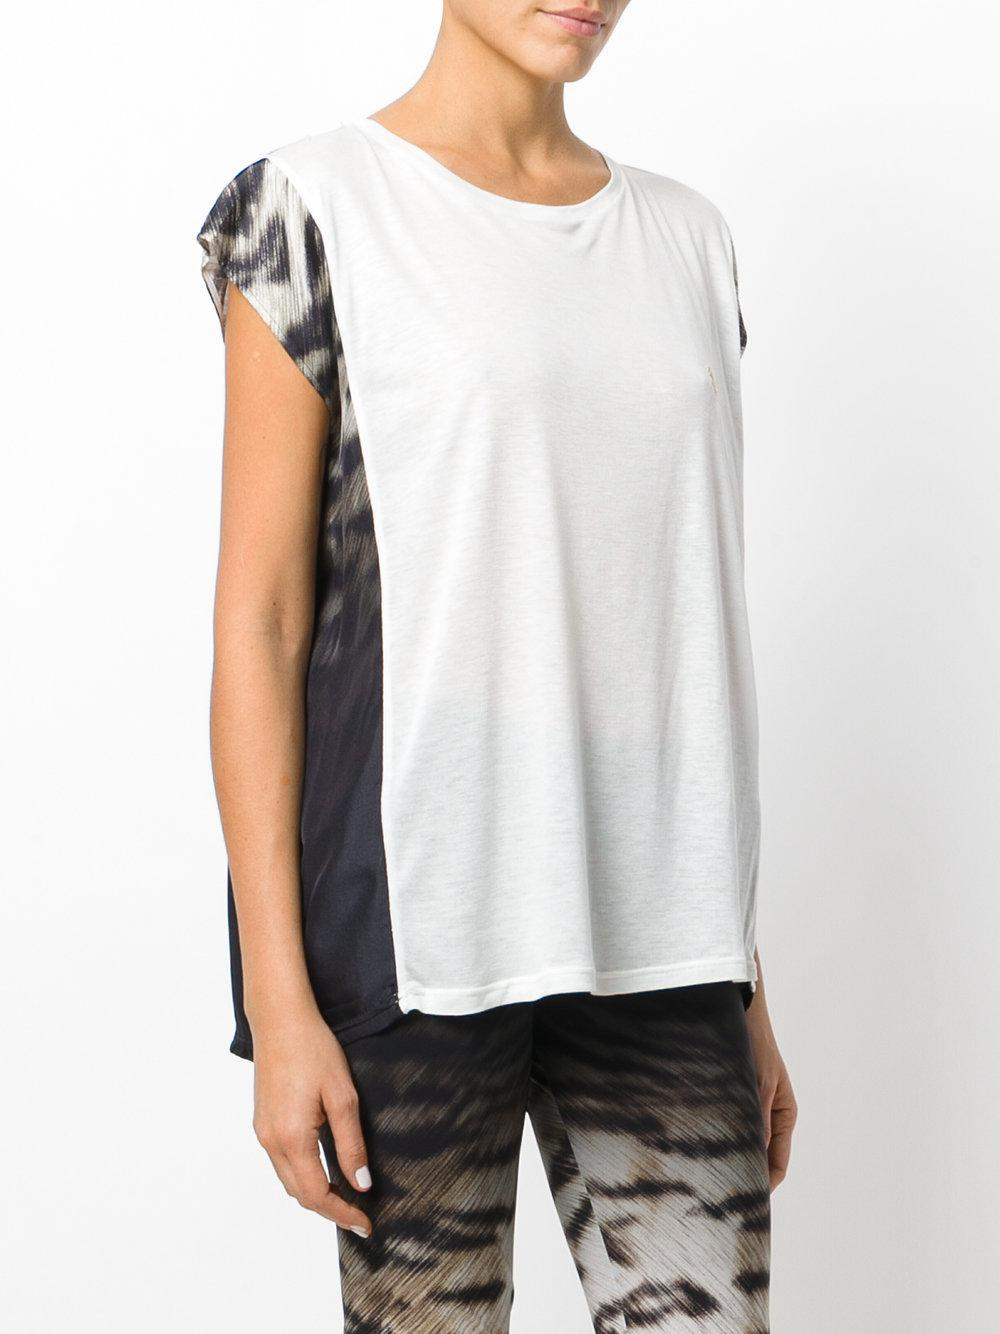 lyst roberto cavalli loose fit crew neck t shirt in white